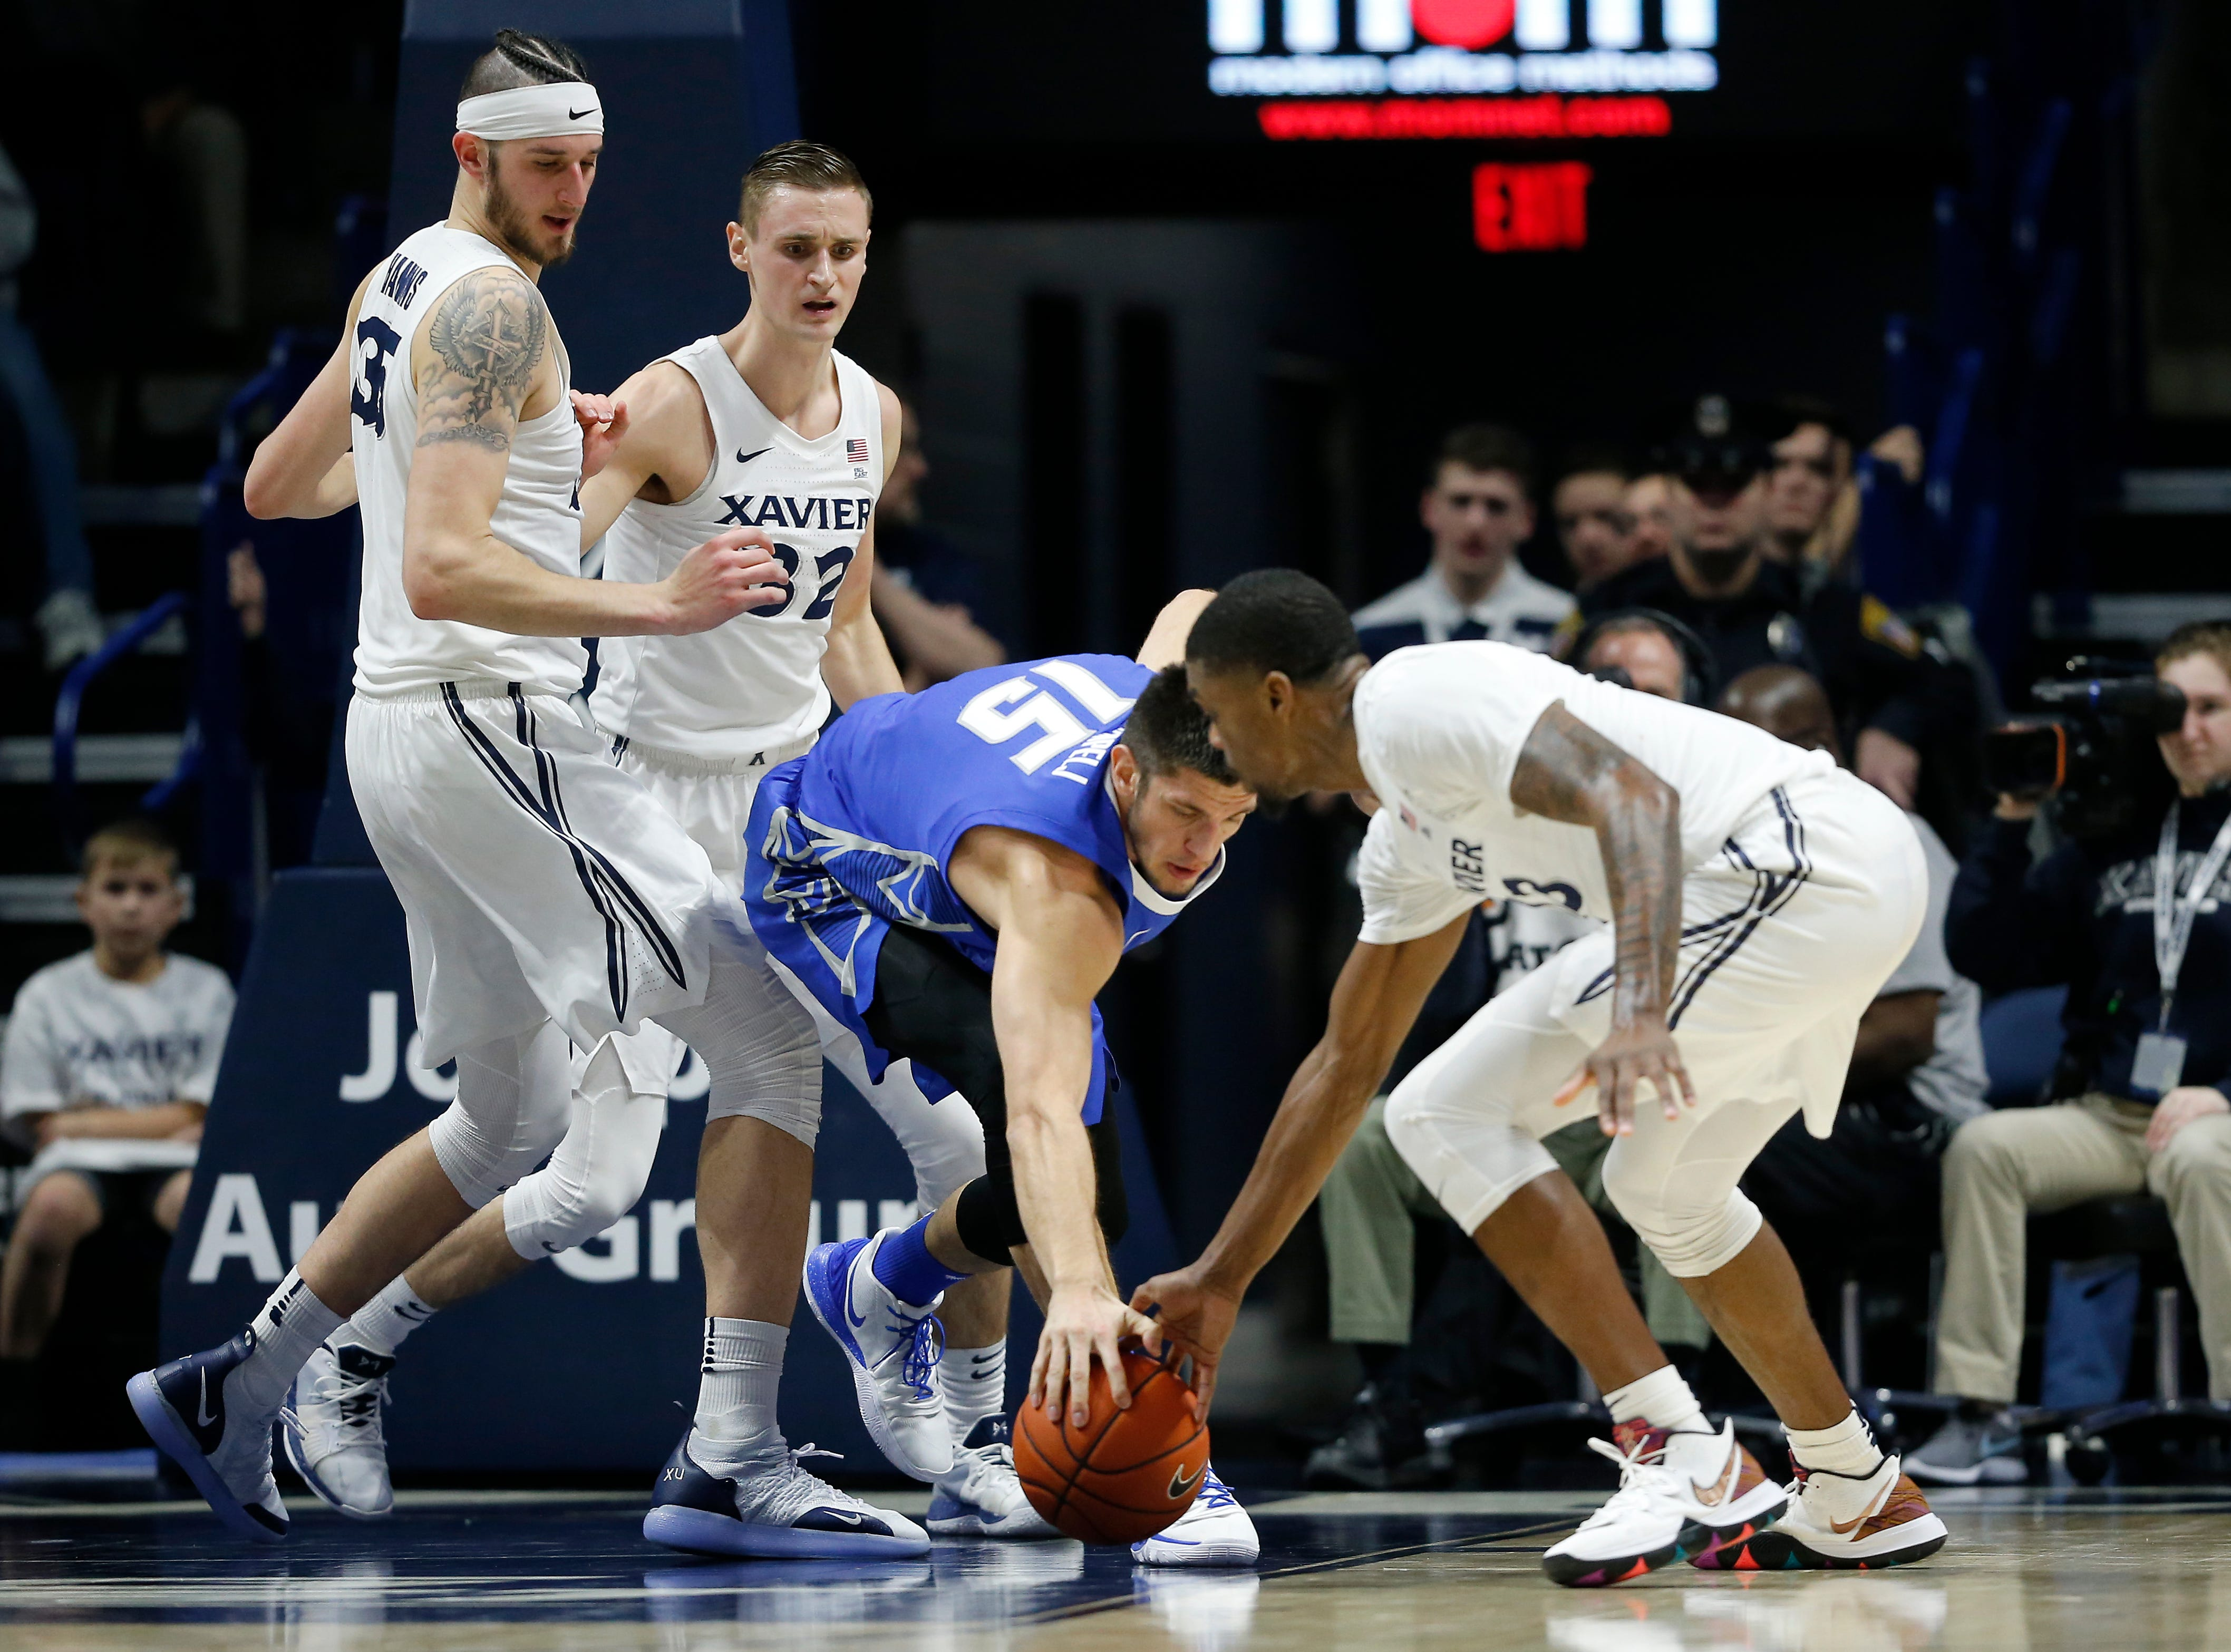 Creighton Bluejays forward Martin Krampelj (15) and Xavier Musketeers forward Naji Marshall (13) reach for a loose ball in the first half of the NCAA Big East Conference basketball game between the Xavier Musketeers and the Creighton Bluejays at Xavier's Cintas Center in Cincinnati on Wednesday, Feb. 13, 2019. Xavier led 36-30 at halftime.